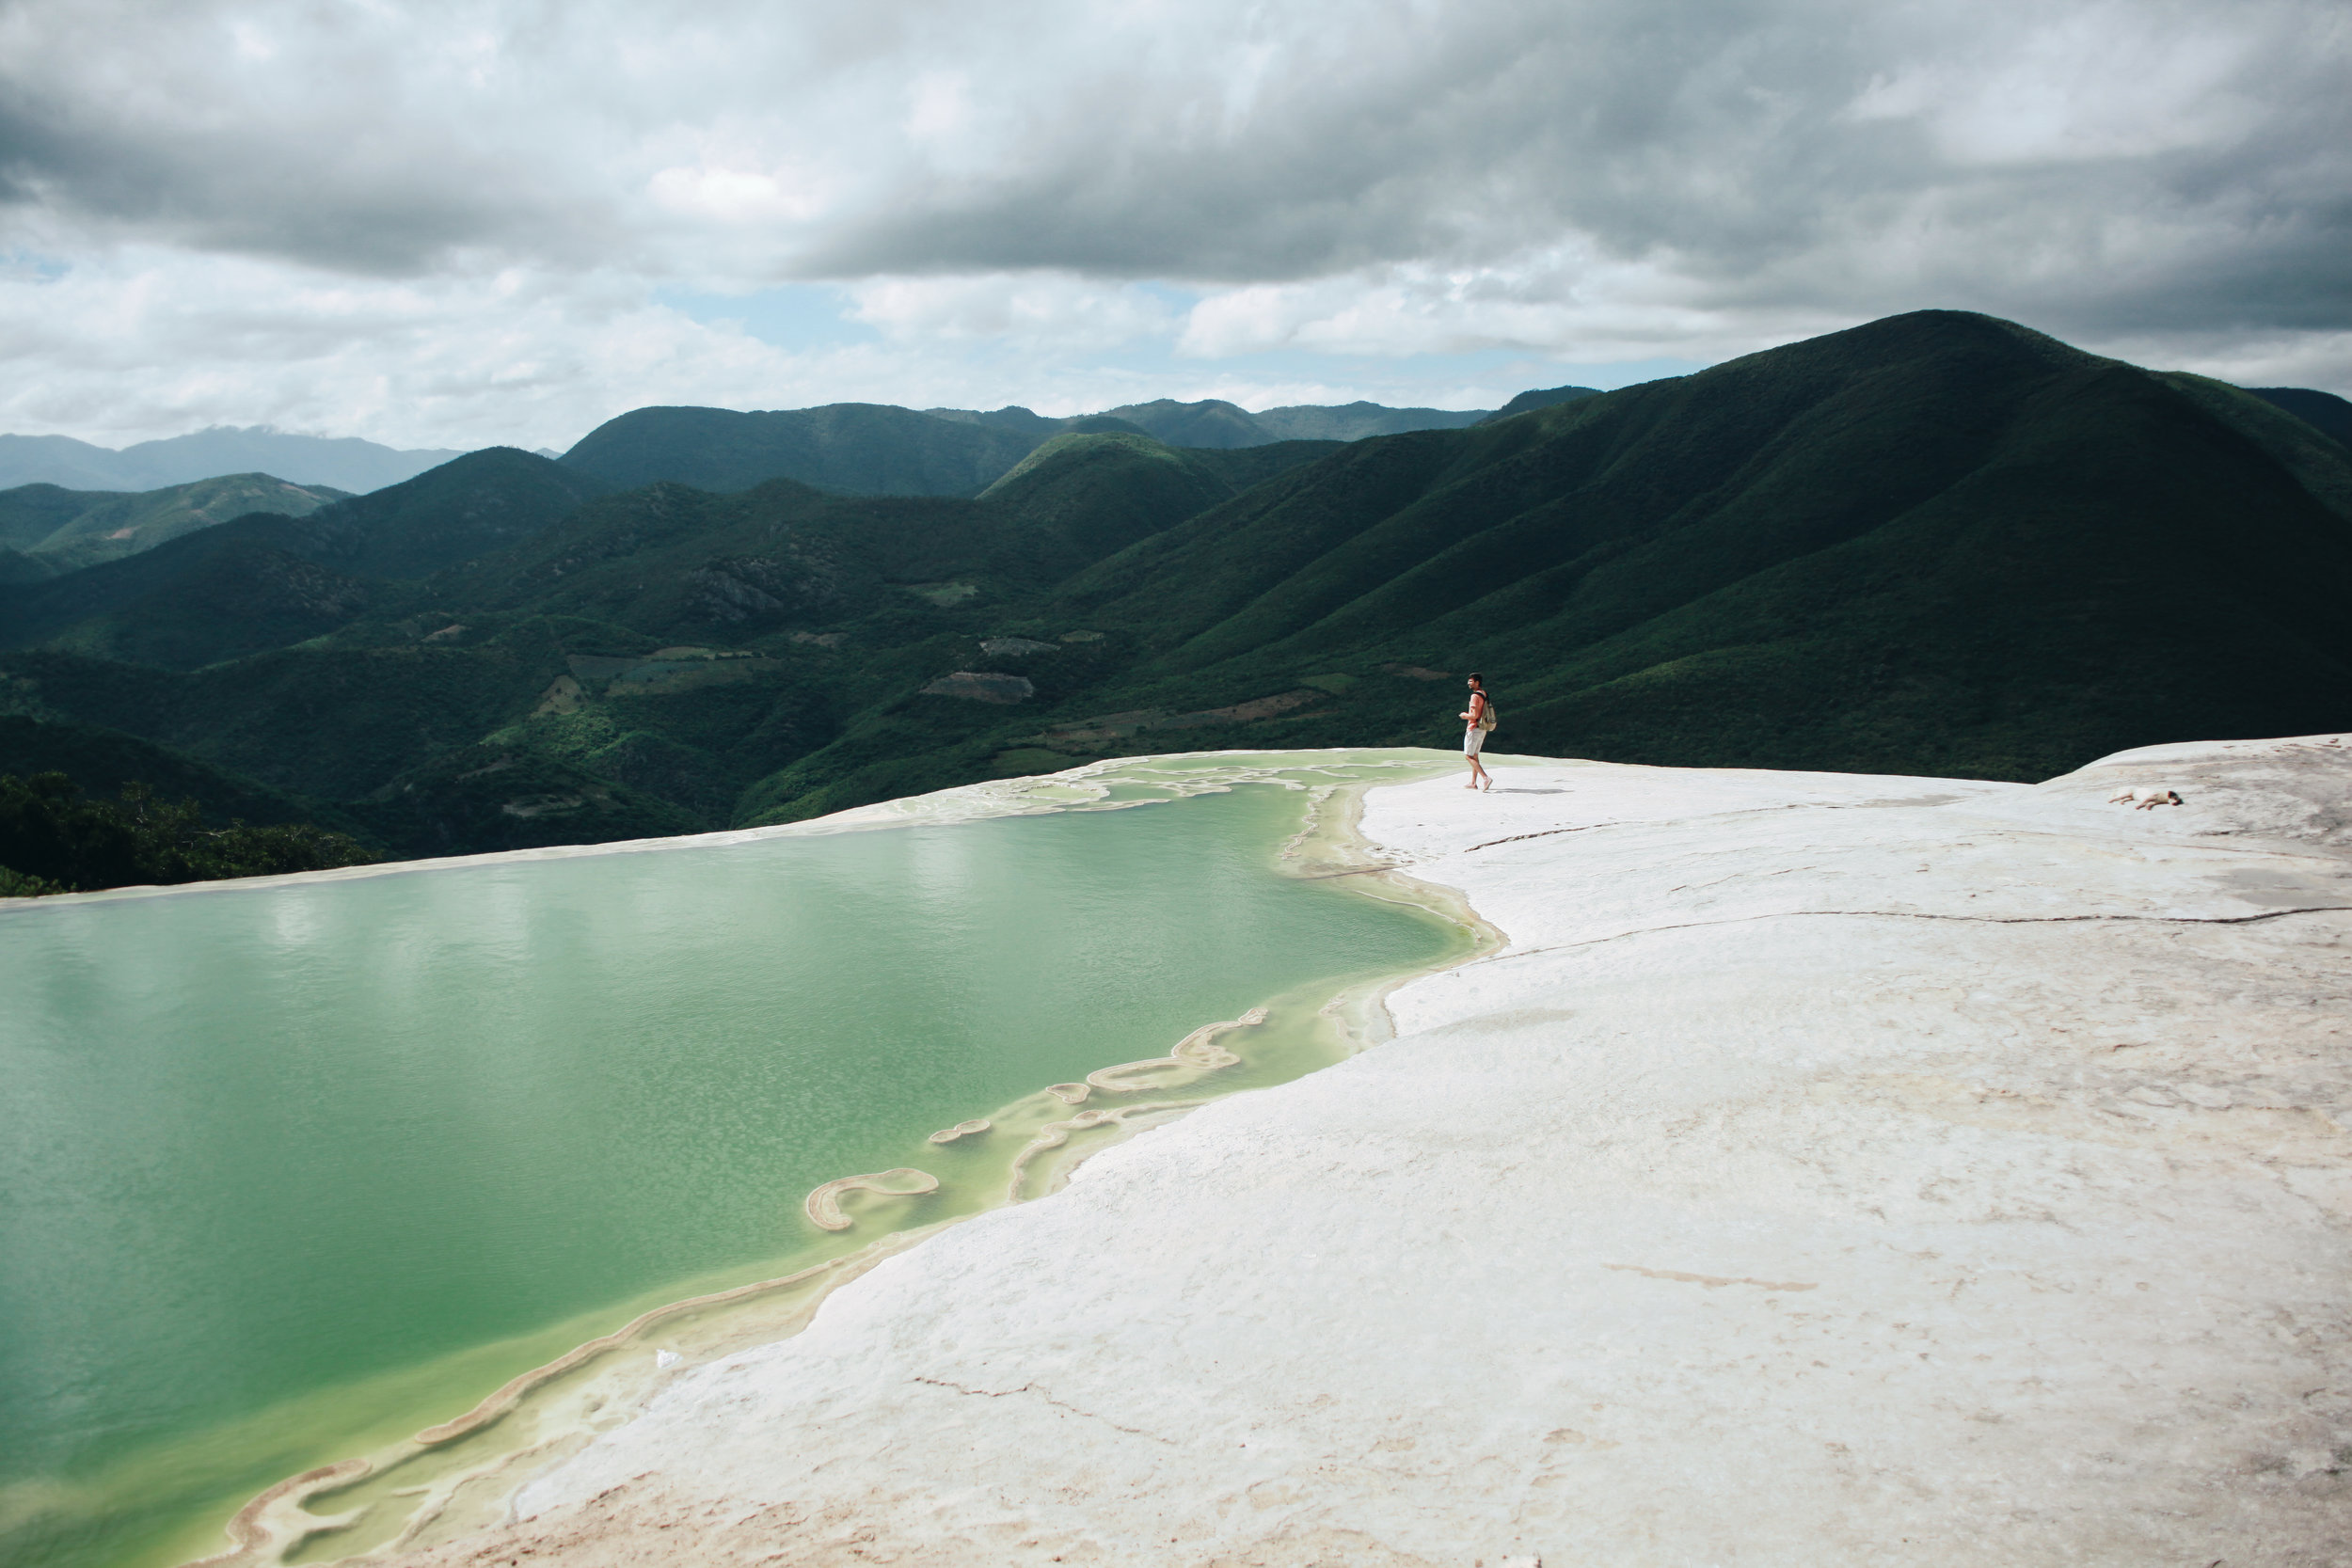 Hierve El Agua Excursion:  Oaxaca is known for its culture  and  its natural wonders. Hierve al Agua is a natural set of rock formations built over thousands of years. Take a dip in the natural spring while taking in a breathtaking panoramic view.